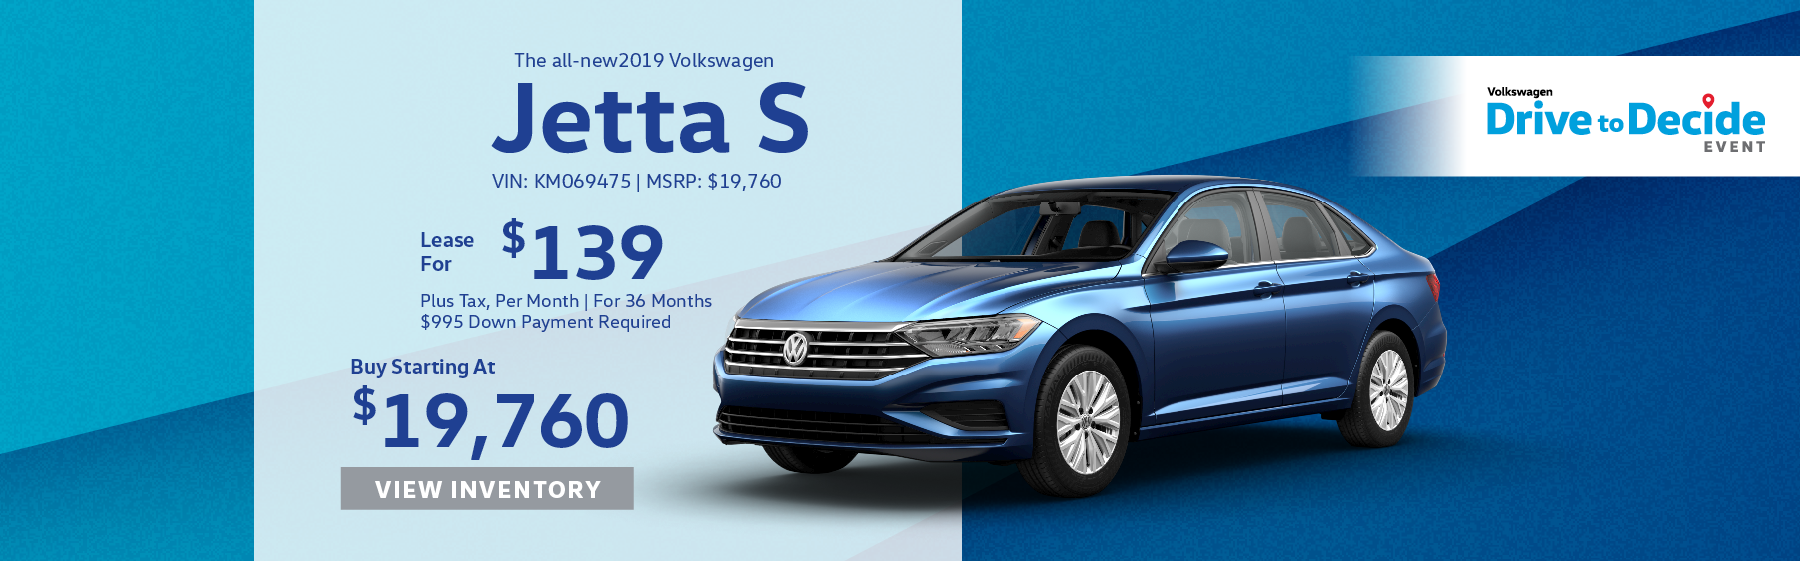 Lease the all-new 2019 Volkswagen Jetta S for $139 plus tax for 36 months. $995 Down payment required. Buy starting at $19,760.